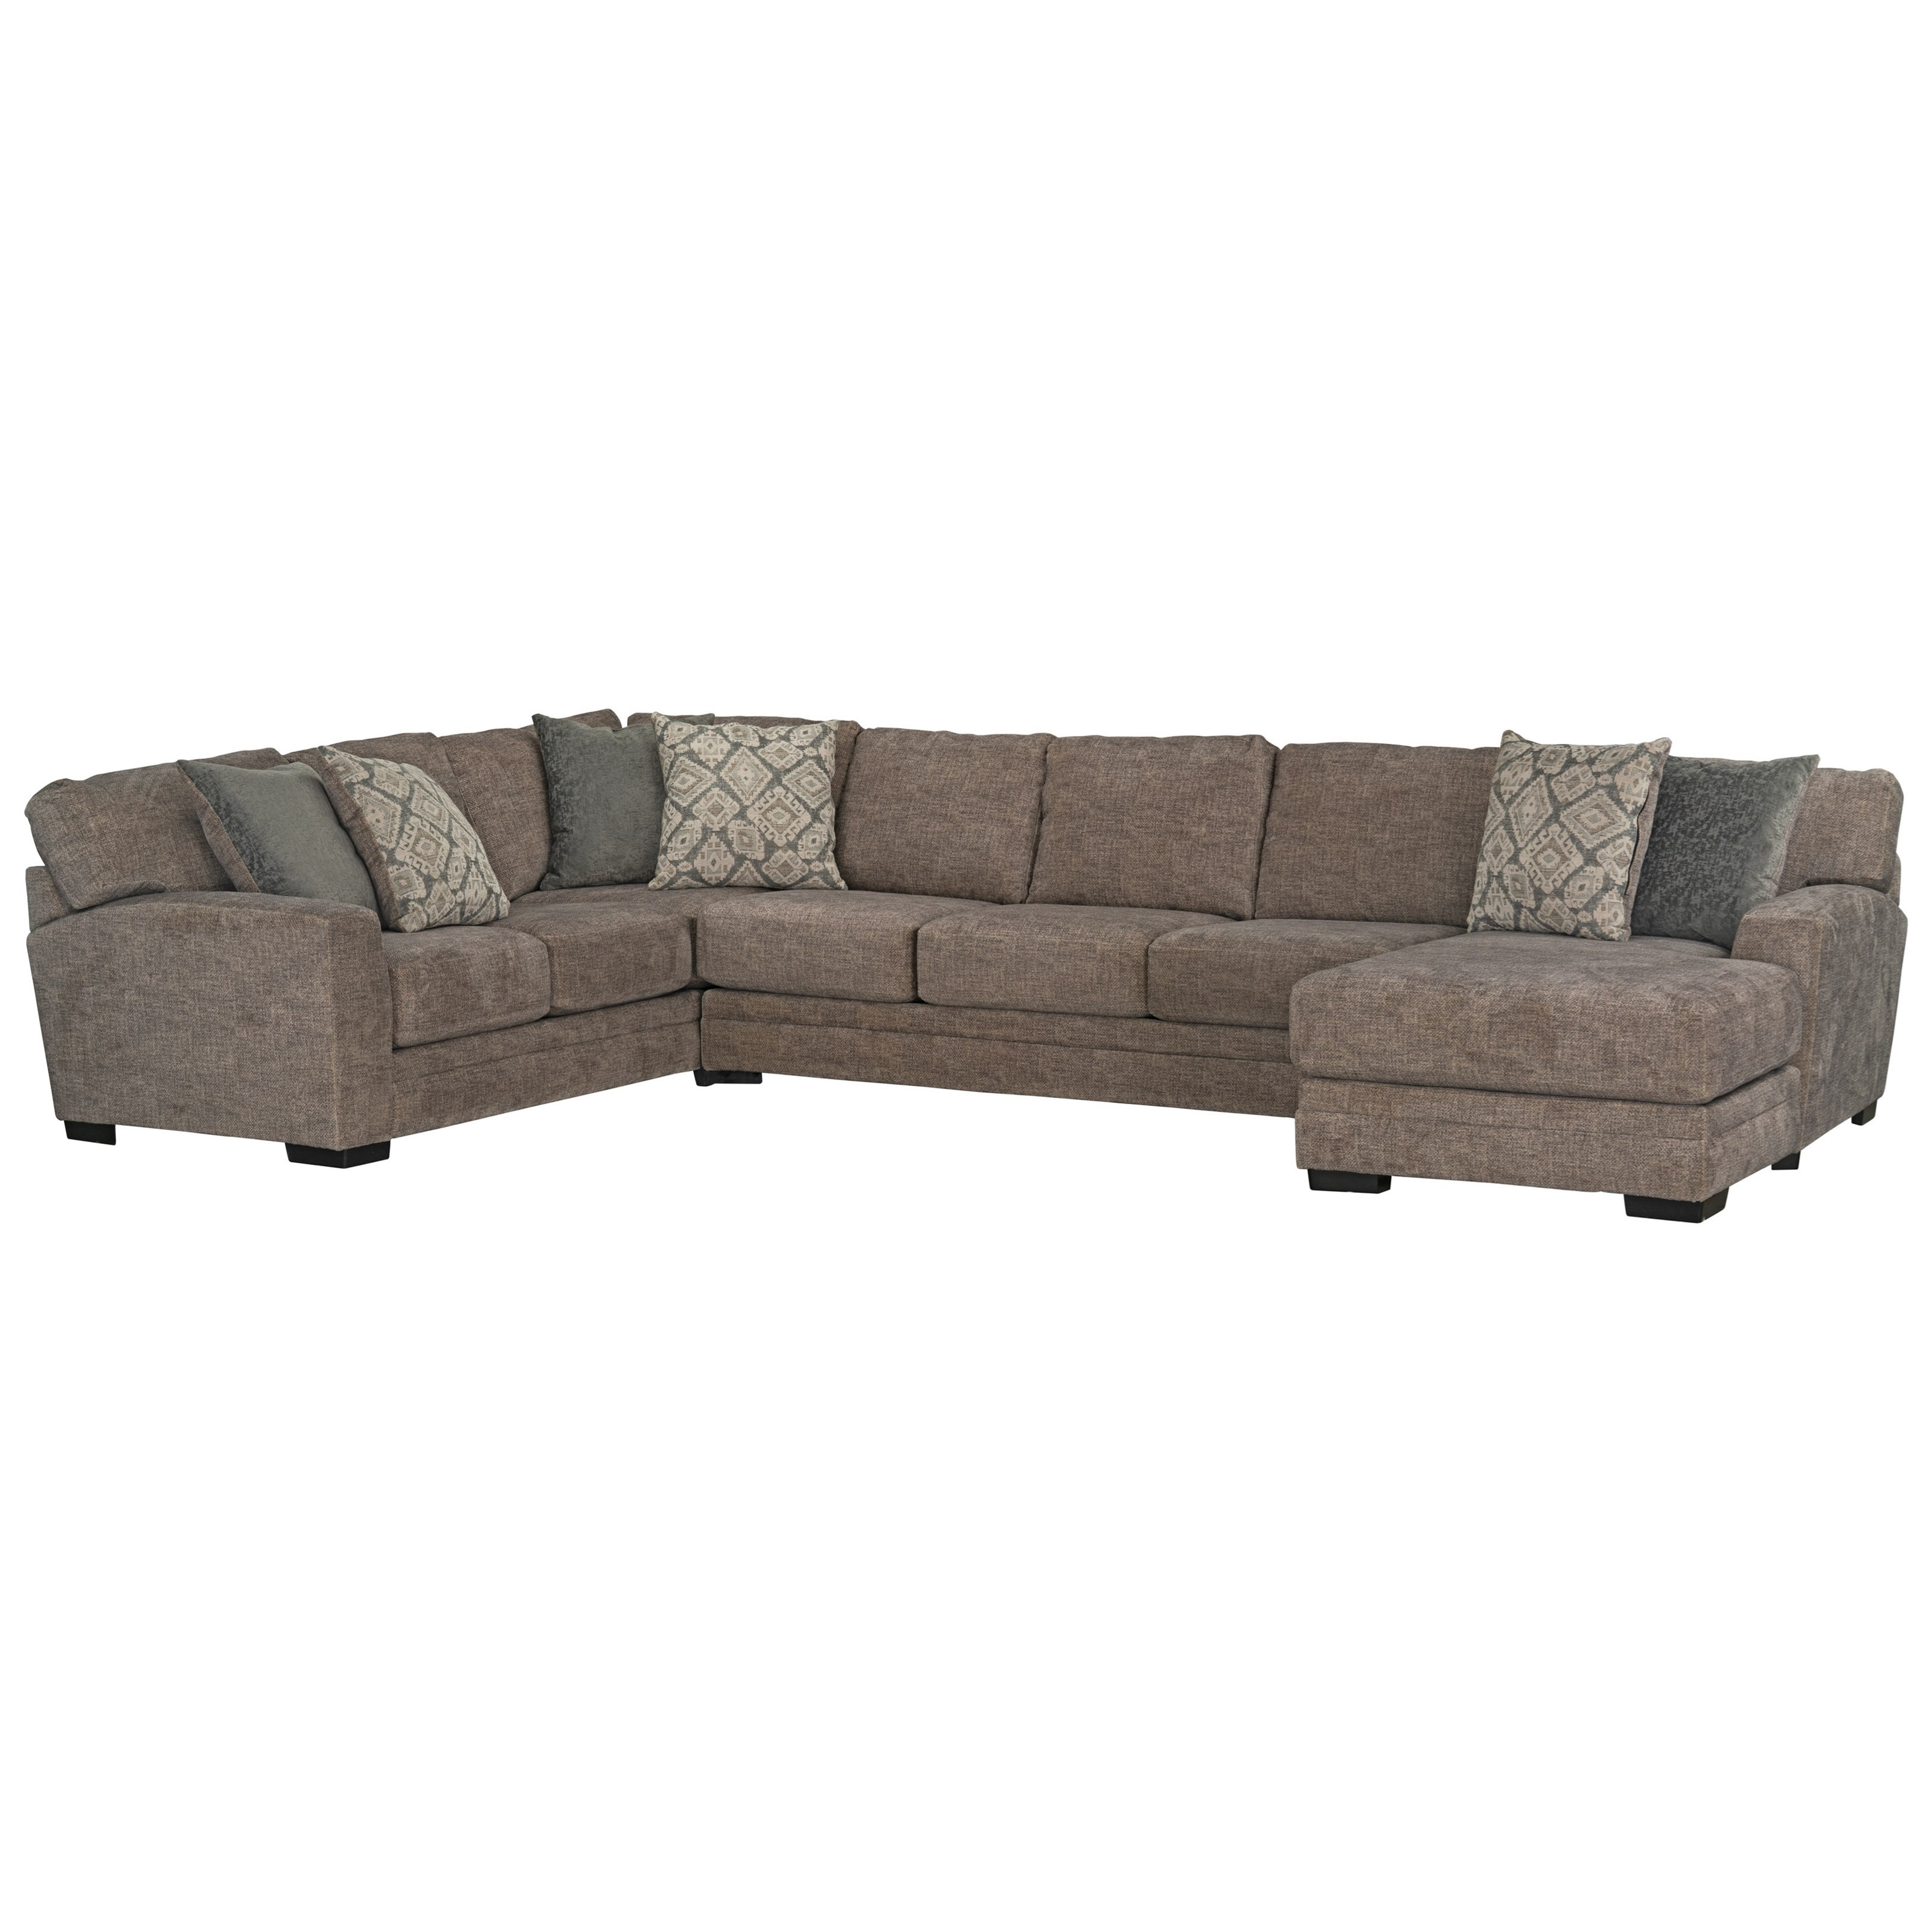 Pillows For Sectional Sofa: Standard Furniture Belleview Transitional Sectional Sofa